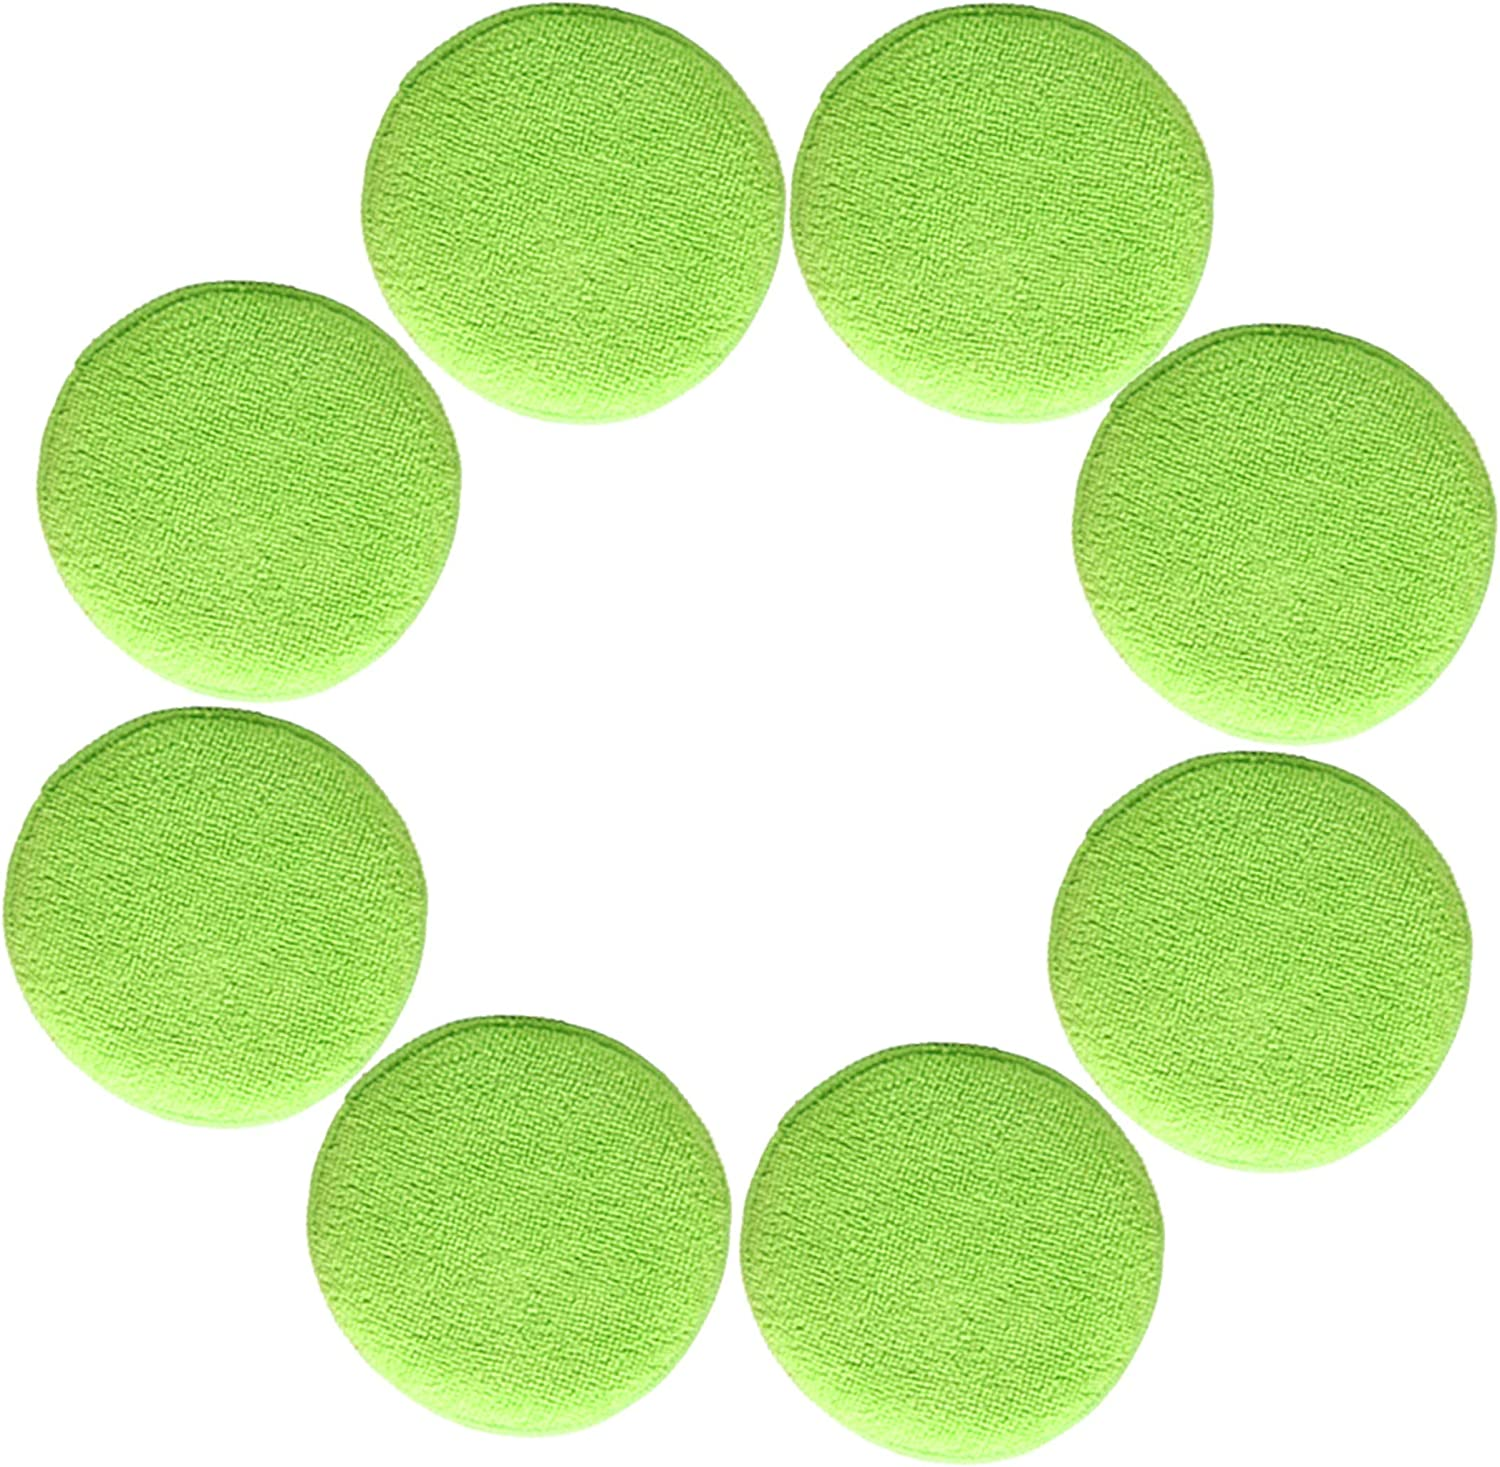 6 Pack, 13 cm Round, Green Polyte Microfibre Buffing and Cleaning Pad